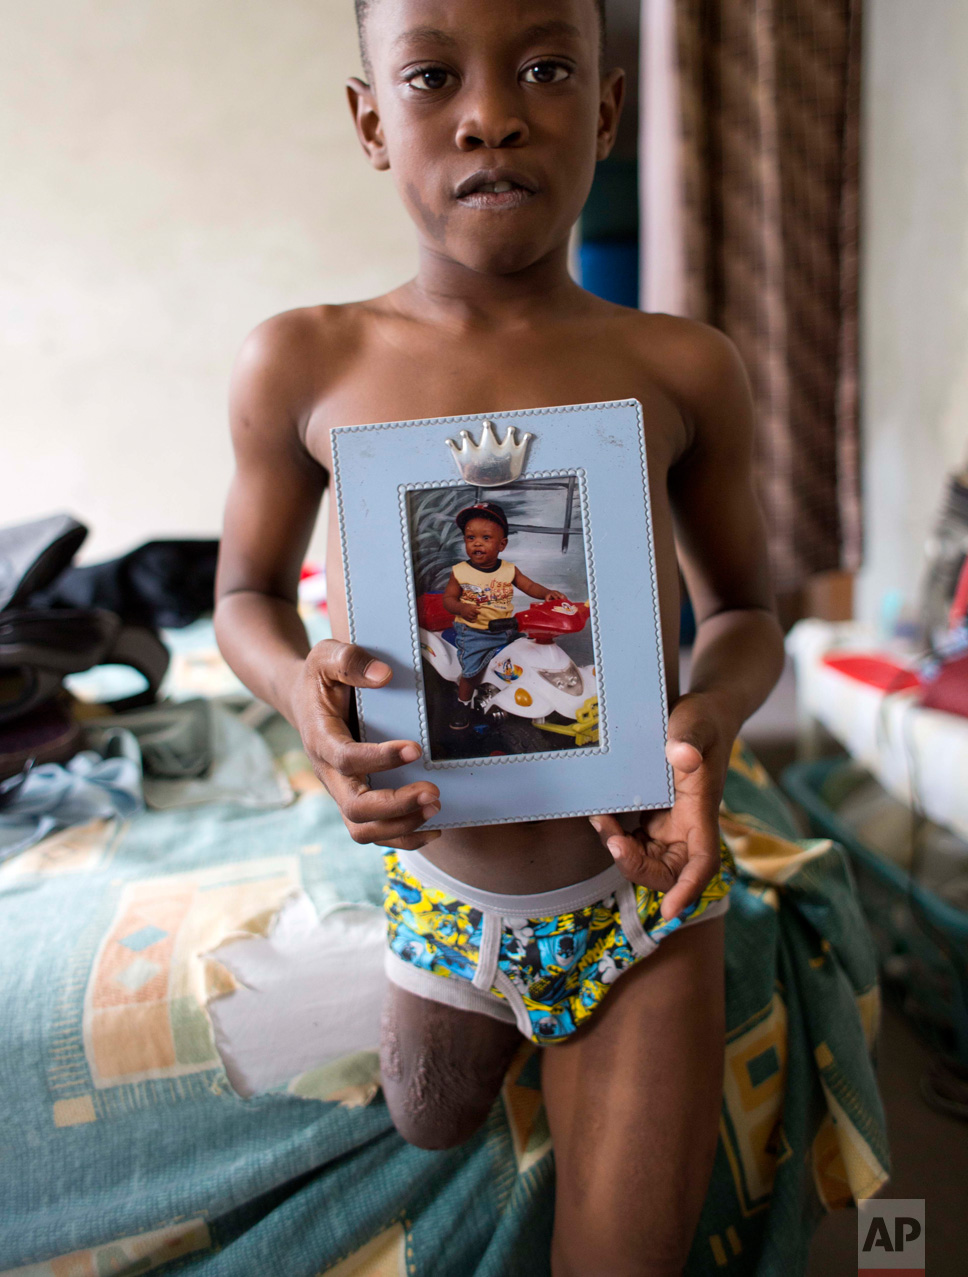 In this Jan. 8, 2017 photo, Judeley Hans Debel stands on his one leg, holding a portrait of himself when he was 1-year-old, at his home in Petion-Ville, Haiti. When Judeley was 2 ½, he was one of thousands of people to undergo amputations after the powerful earthquake that devastated Haiti's capital seven years ago. (AP Photo/Dieu Nalio Chery)